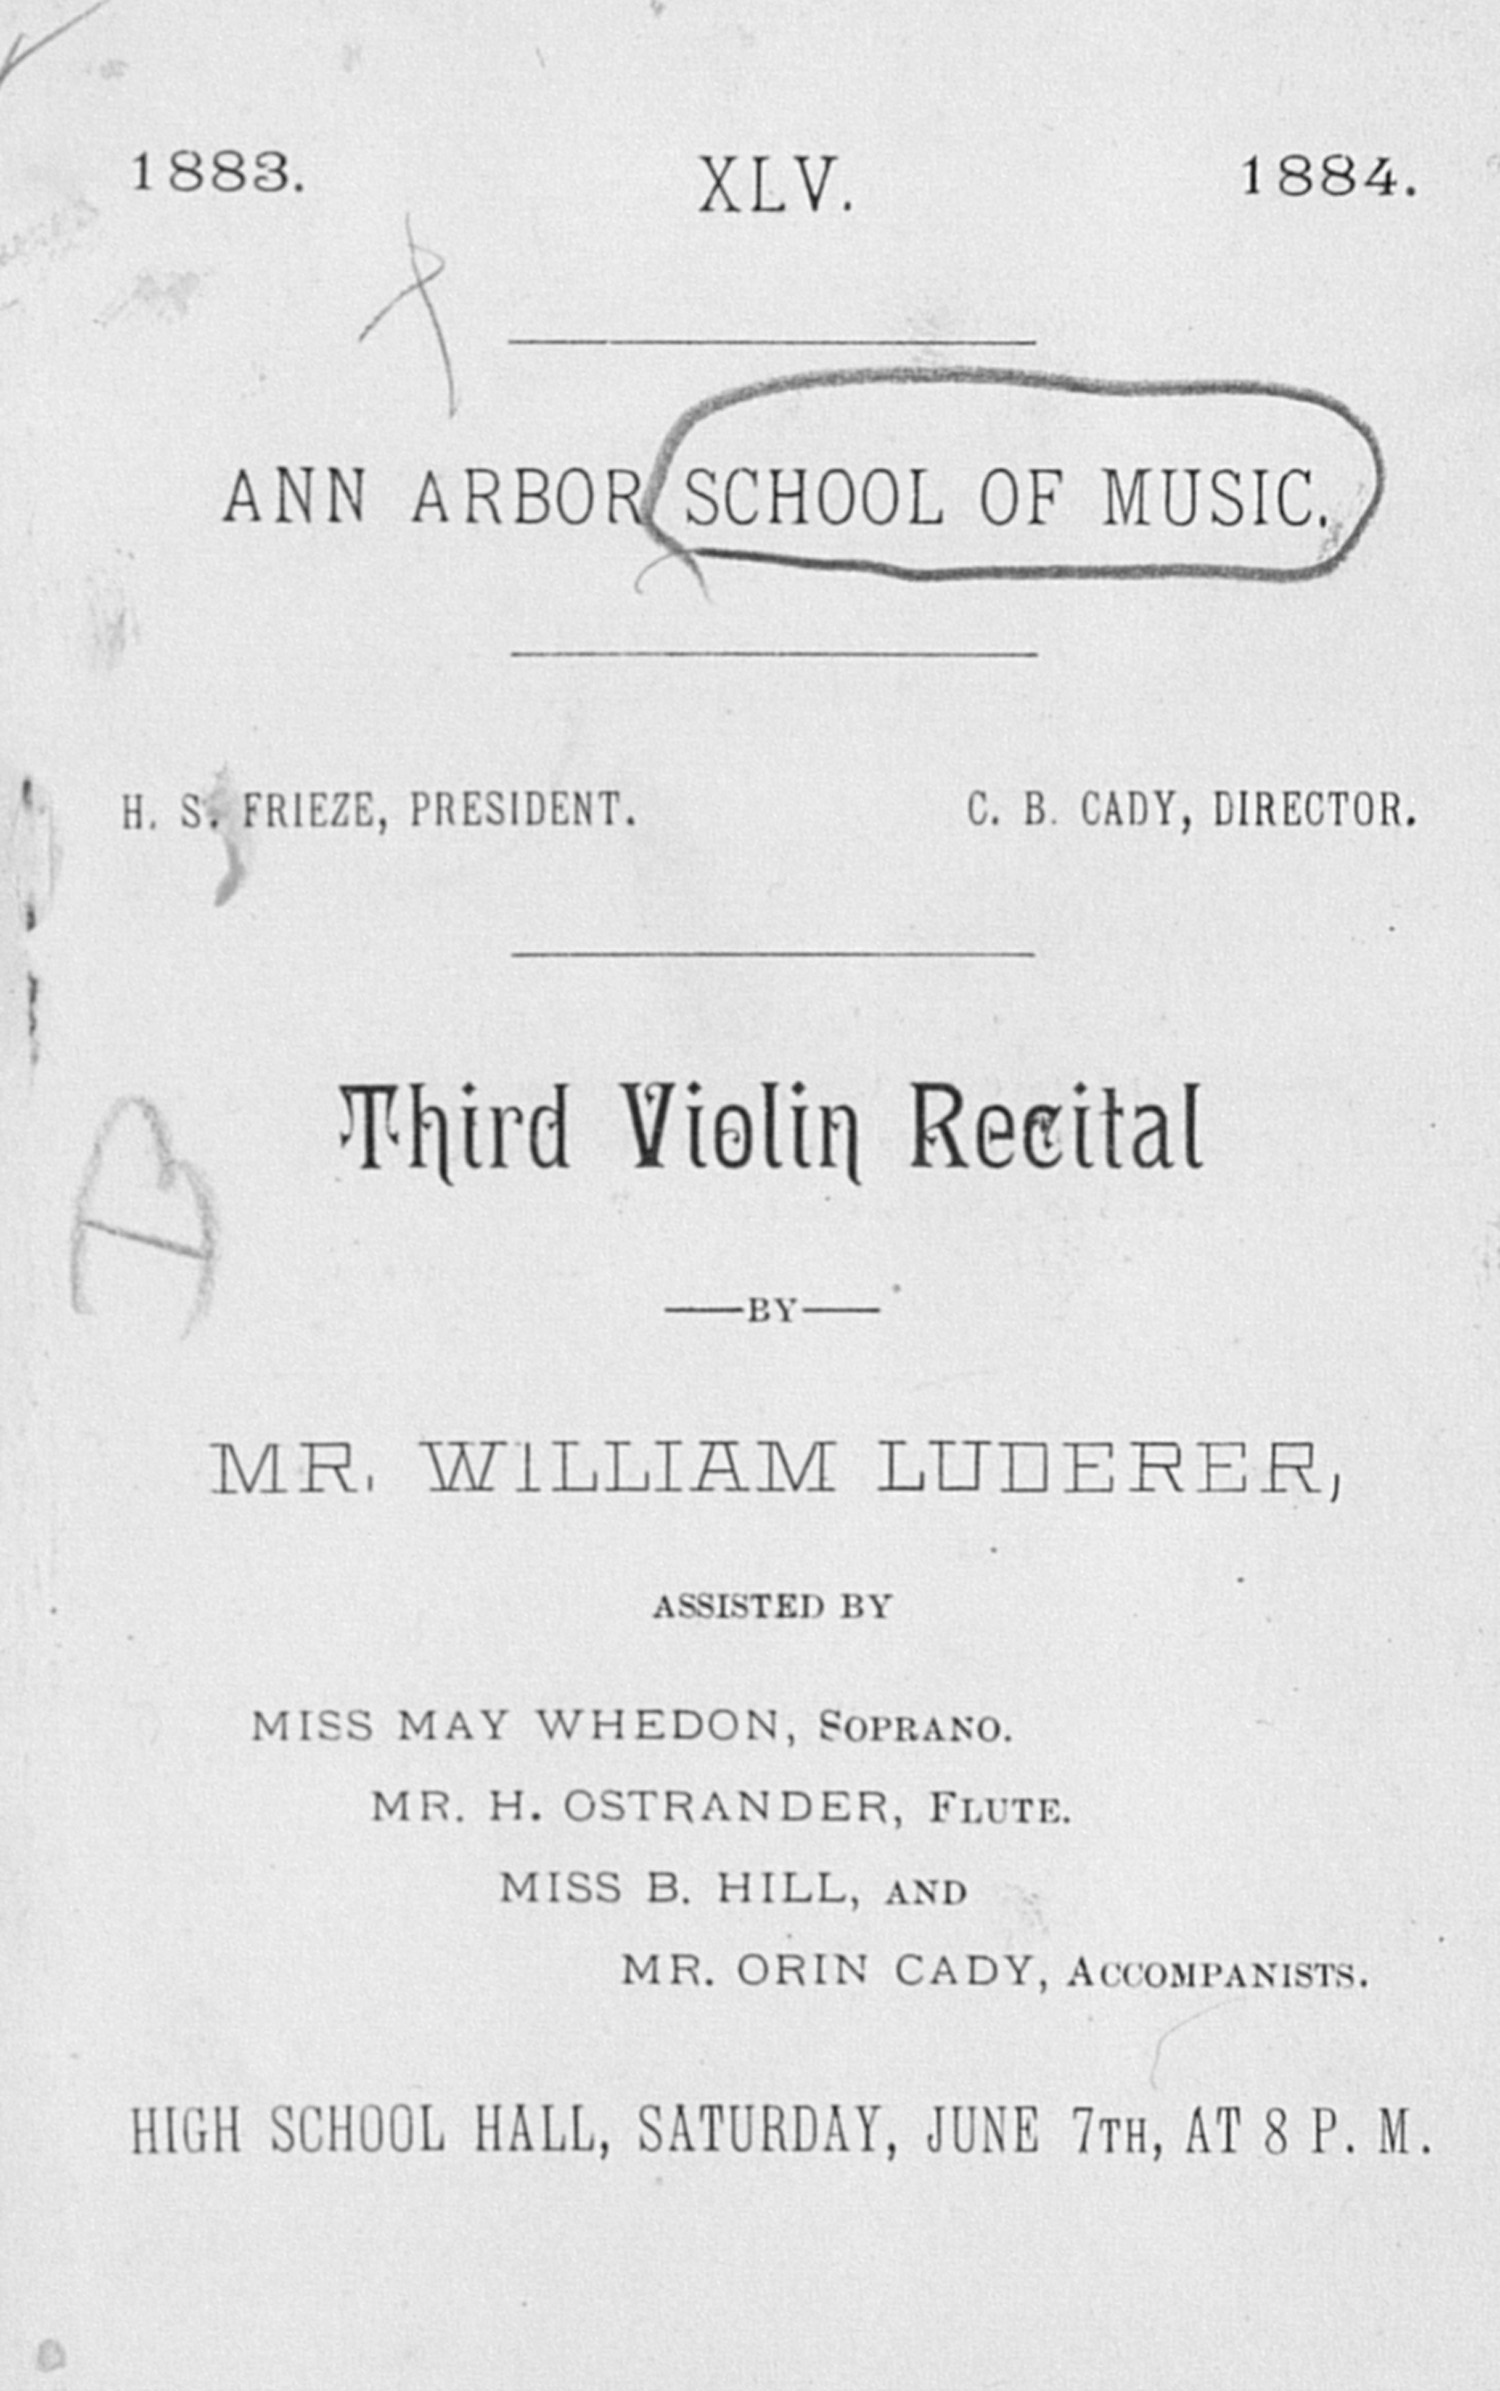 UMS Concert Program, June 7th: Third Violin Recital -- Mr. William Luderer image